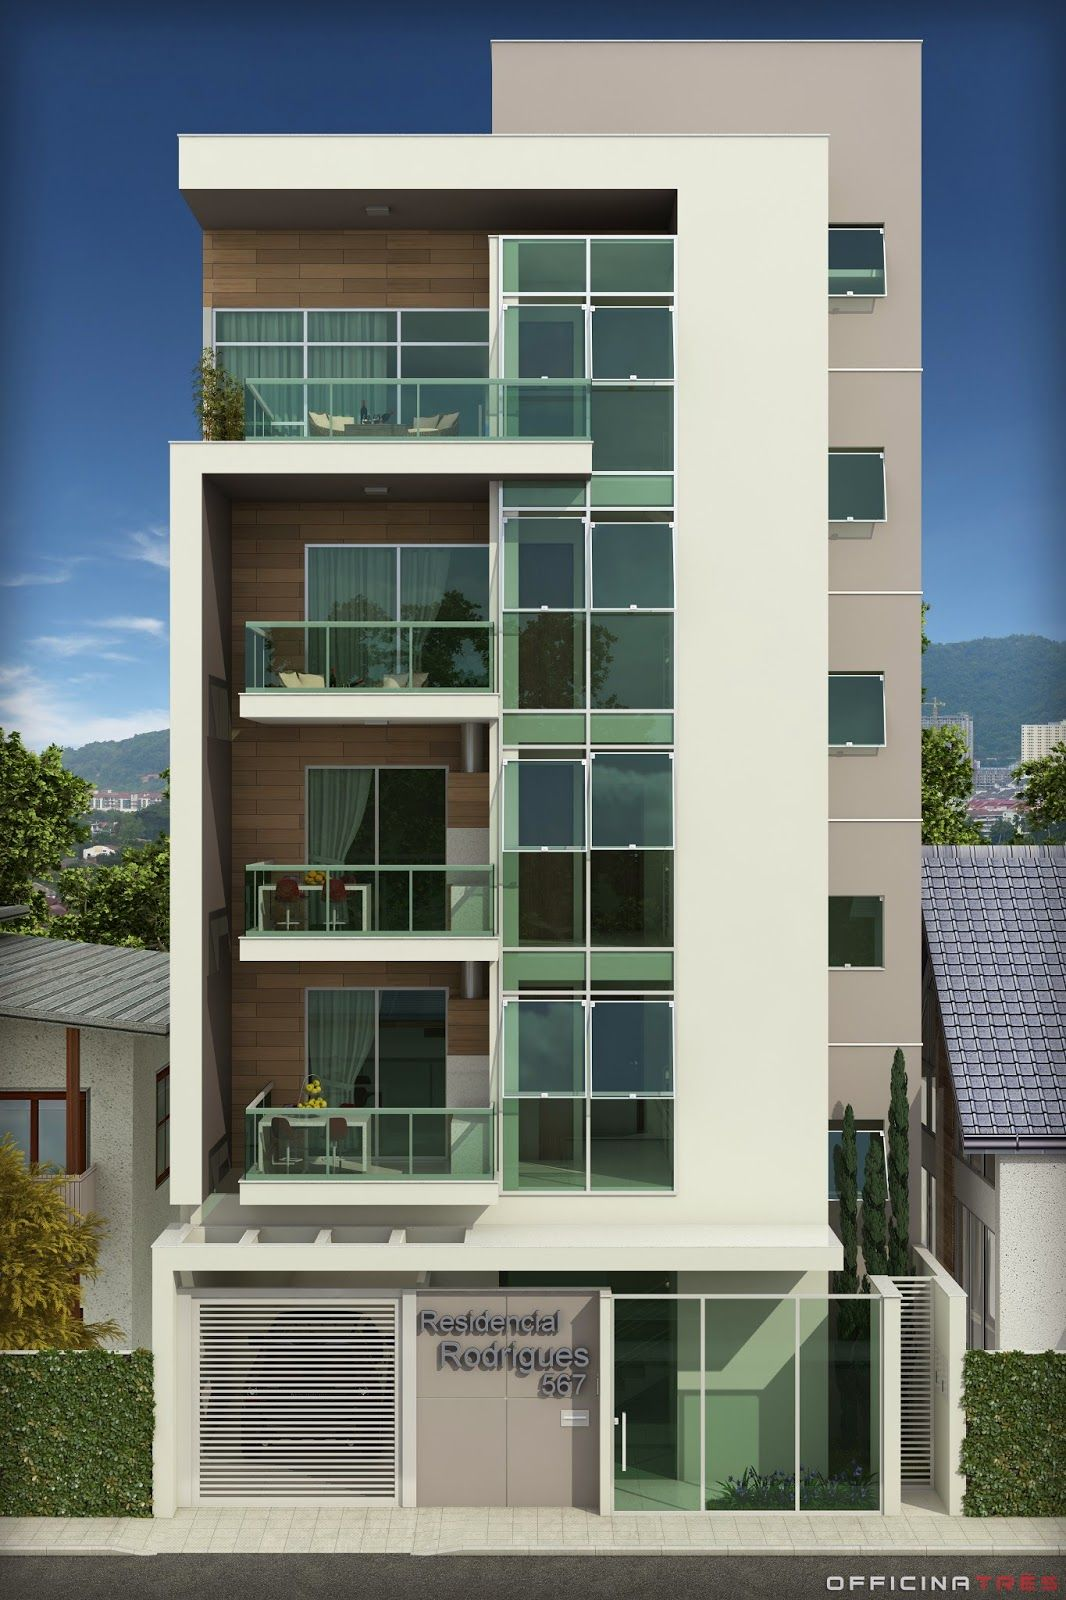 Officinatr s pr dio residencial em manhua u mg for Edificios minimalistas